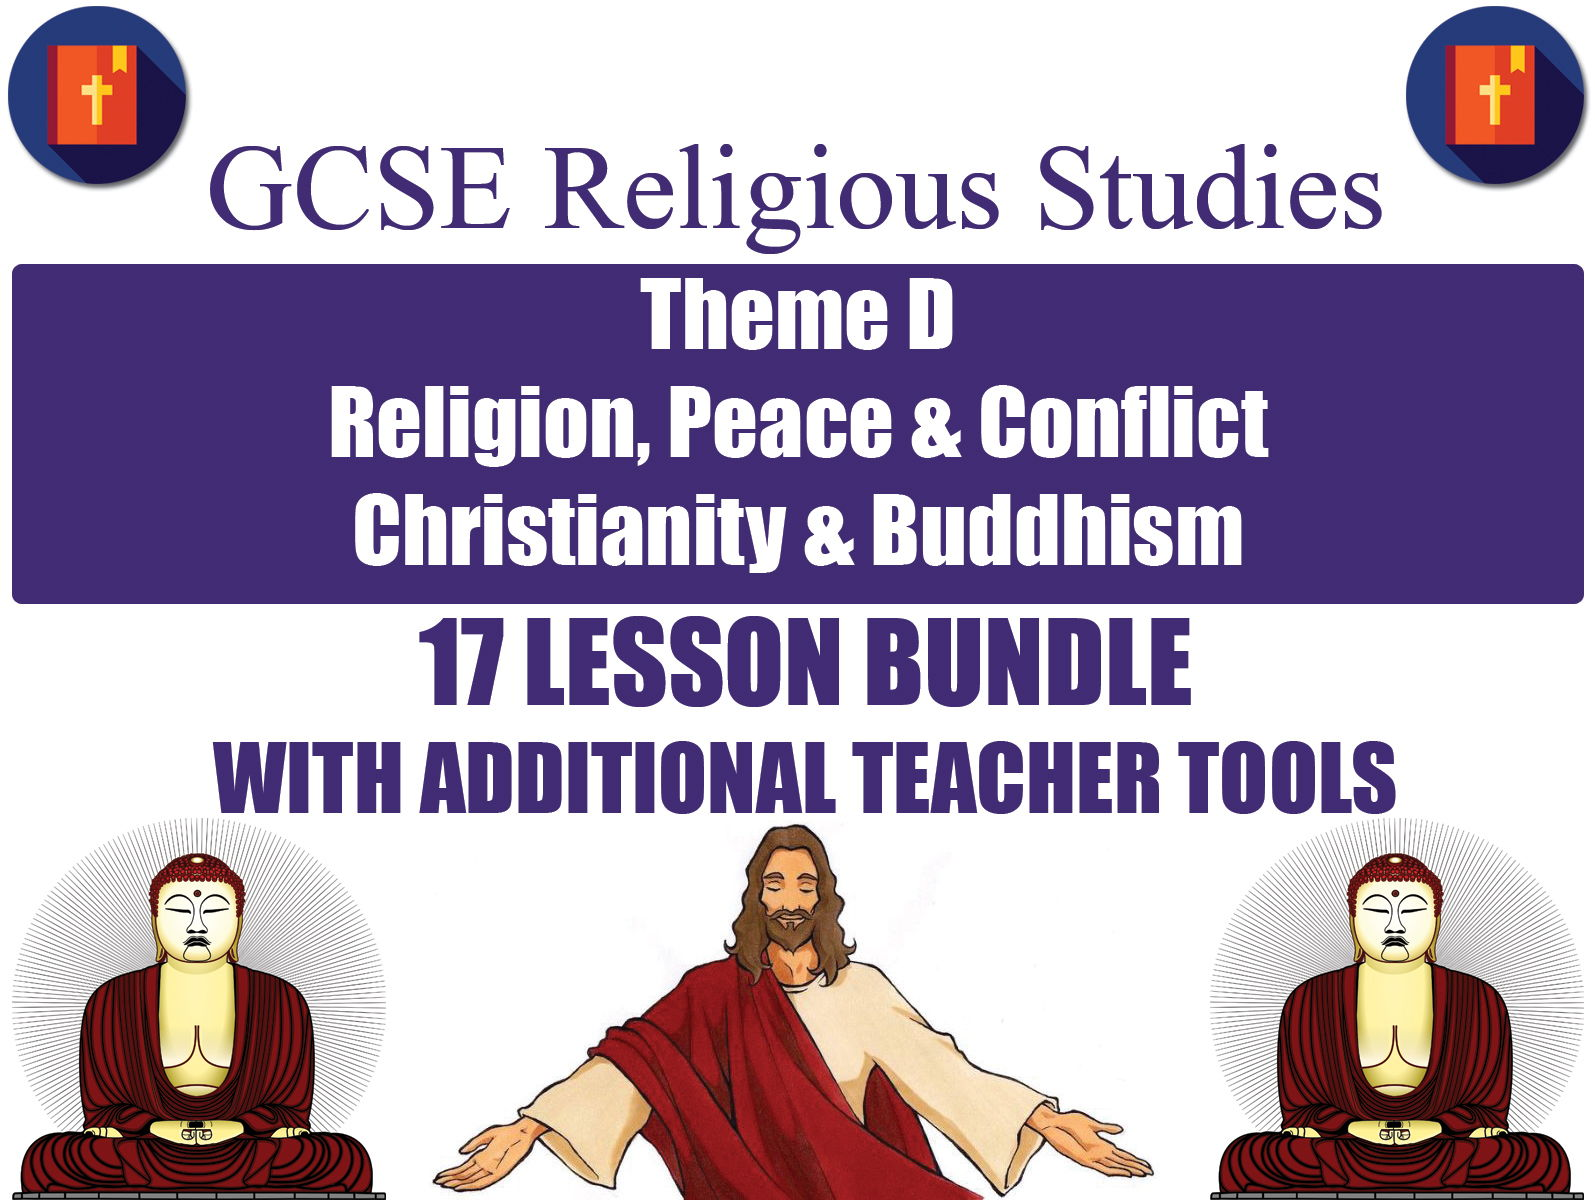 GCSE Christianity & Buddhism - Religion, Peace & Conflict (17 Lessons)